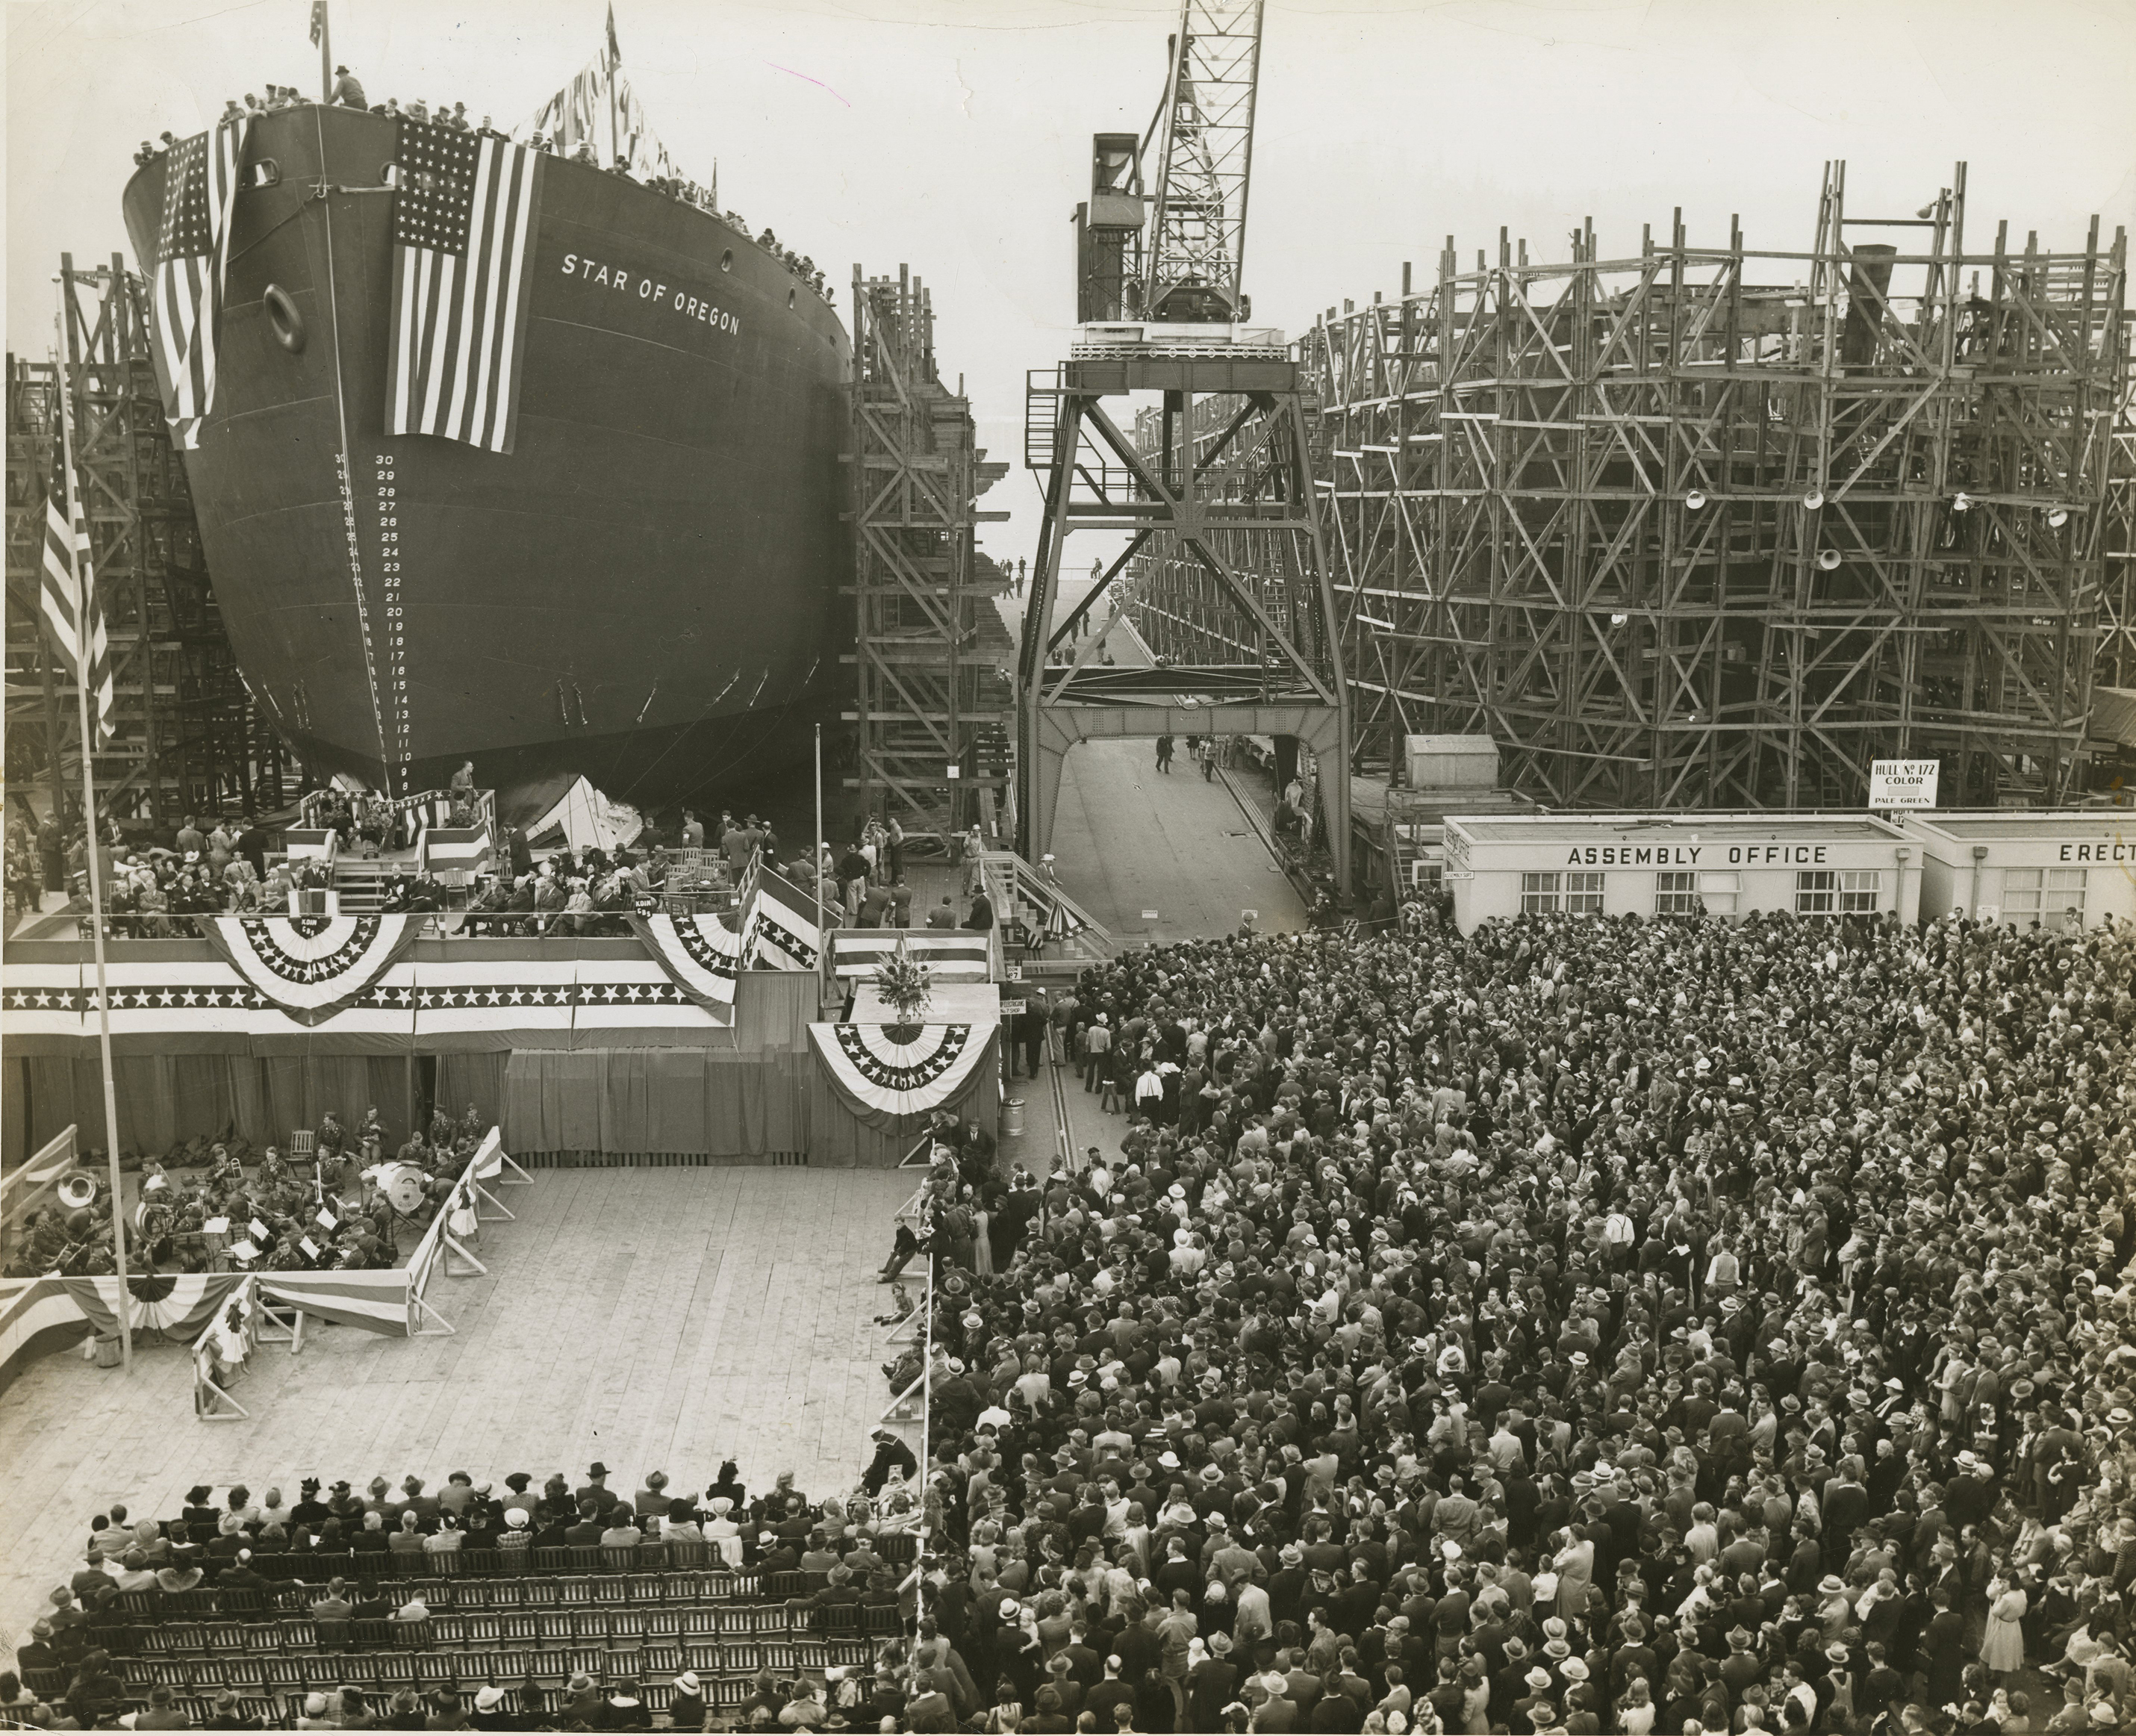 Launching of the Star of Oregon, Sept. 27, 1941